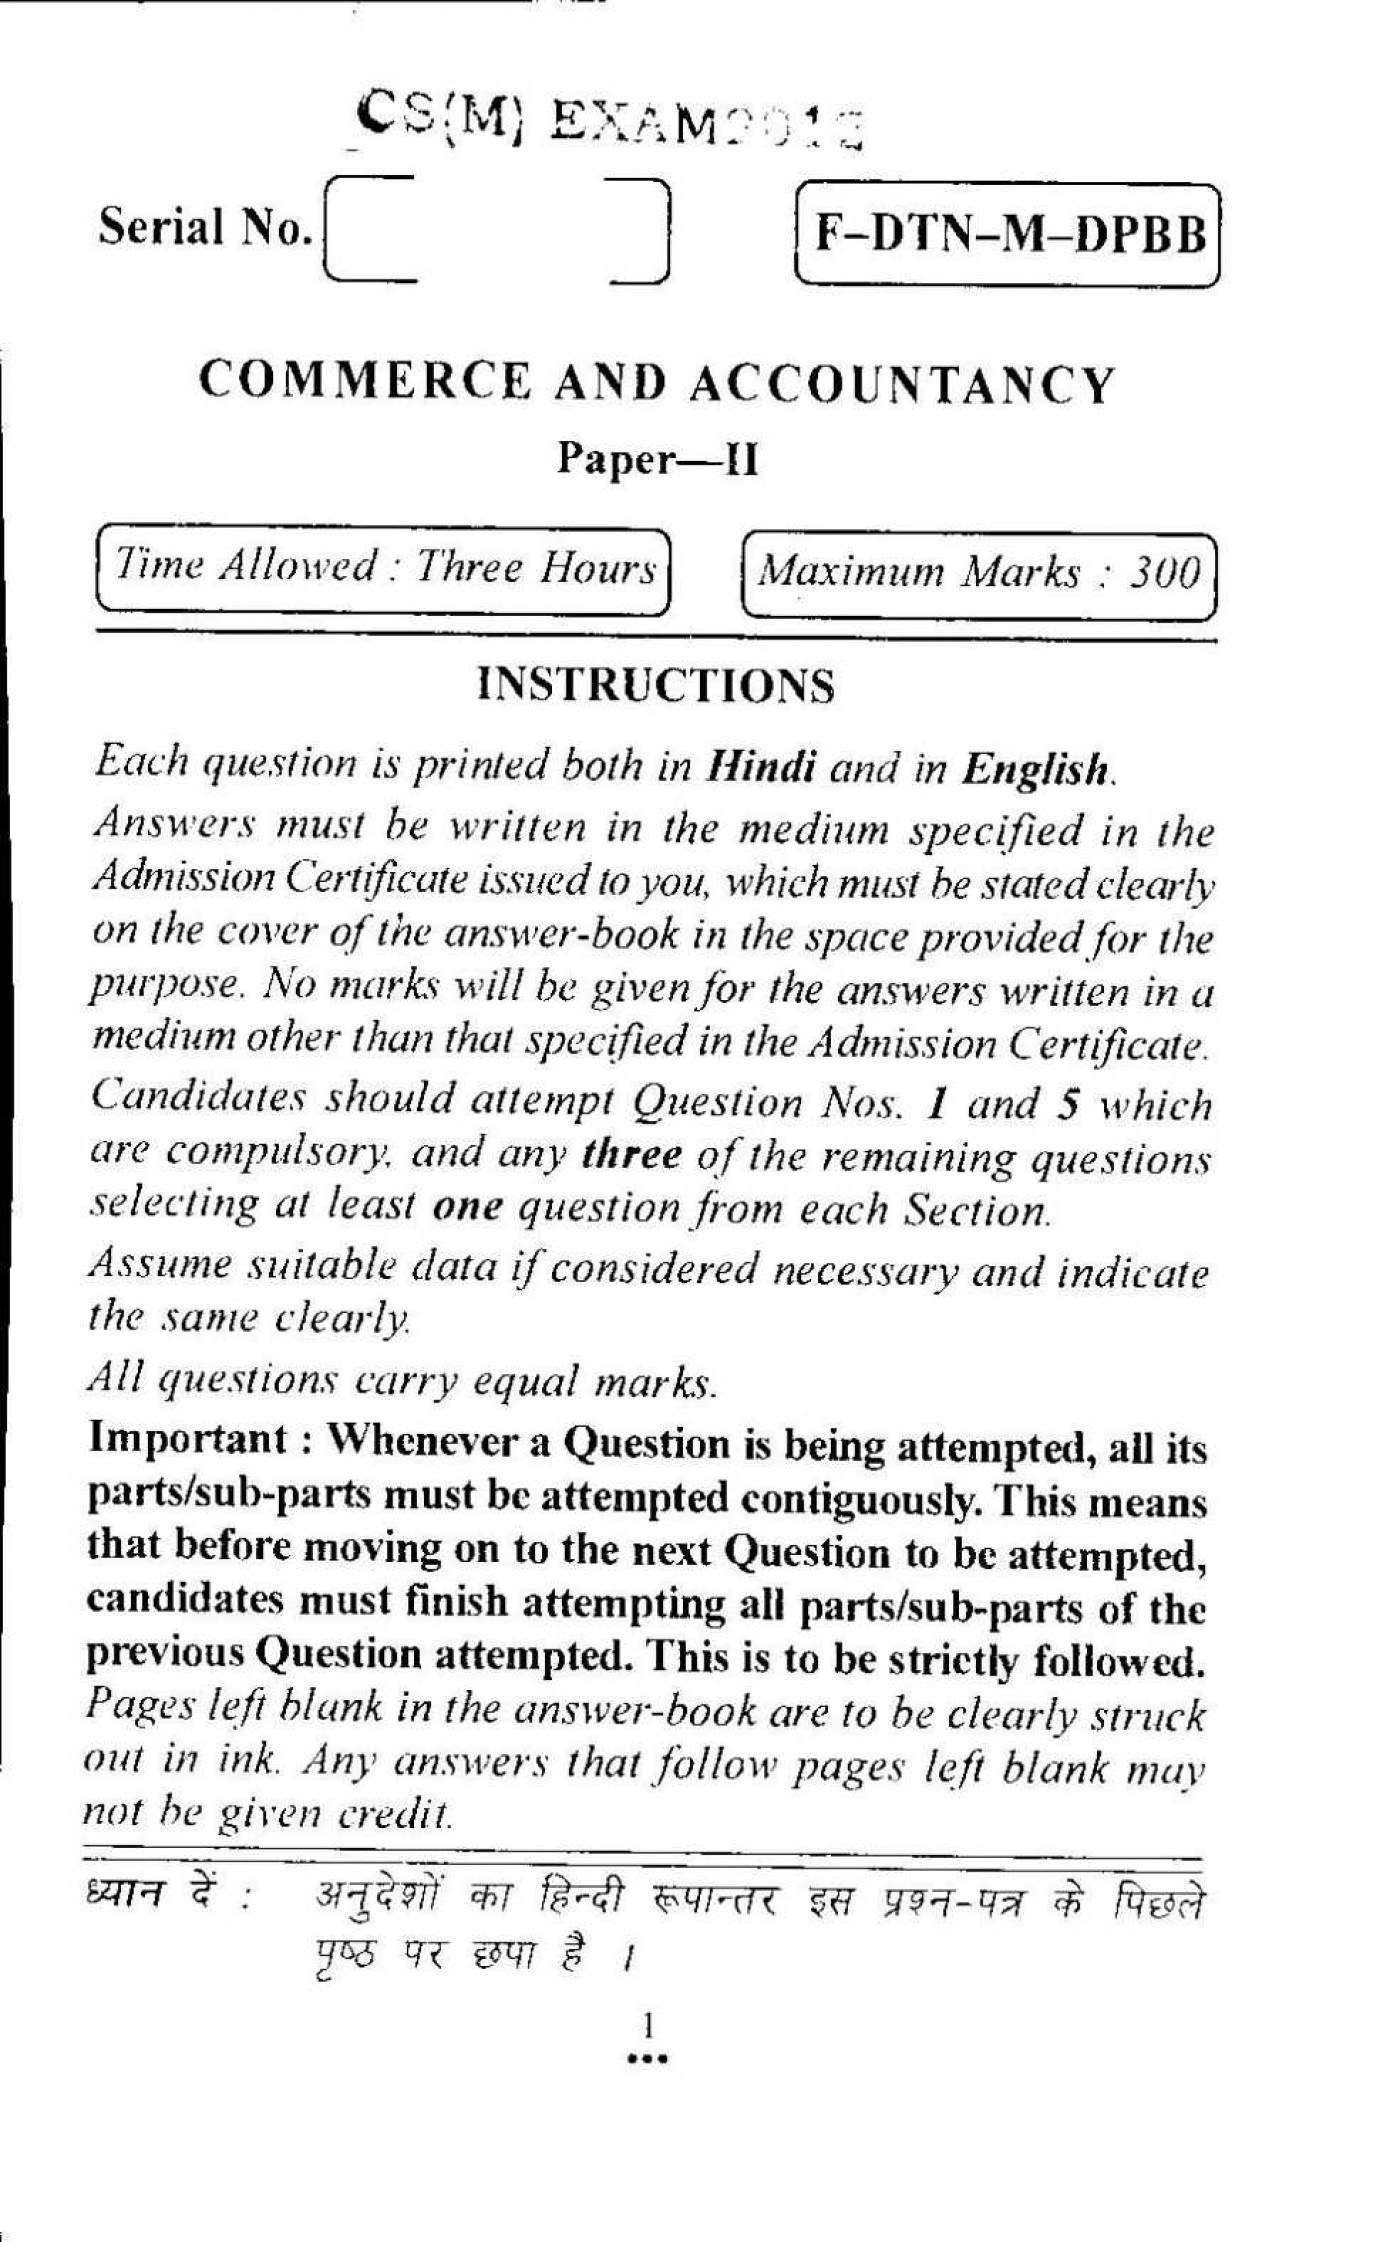 011 Civil Services Examination Commerce And Accountancy Paper Ii Previous Years Que Essay Example Marvelous Racism Argumentative Topics Persuasive In Canada 1400